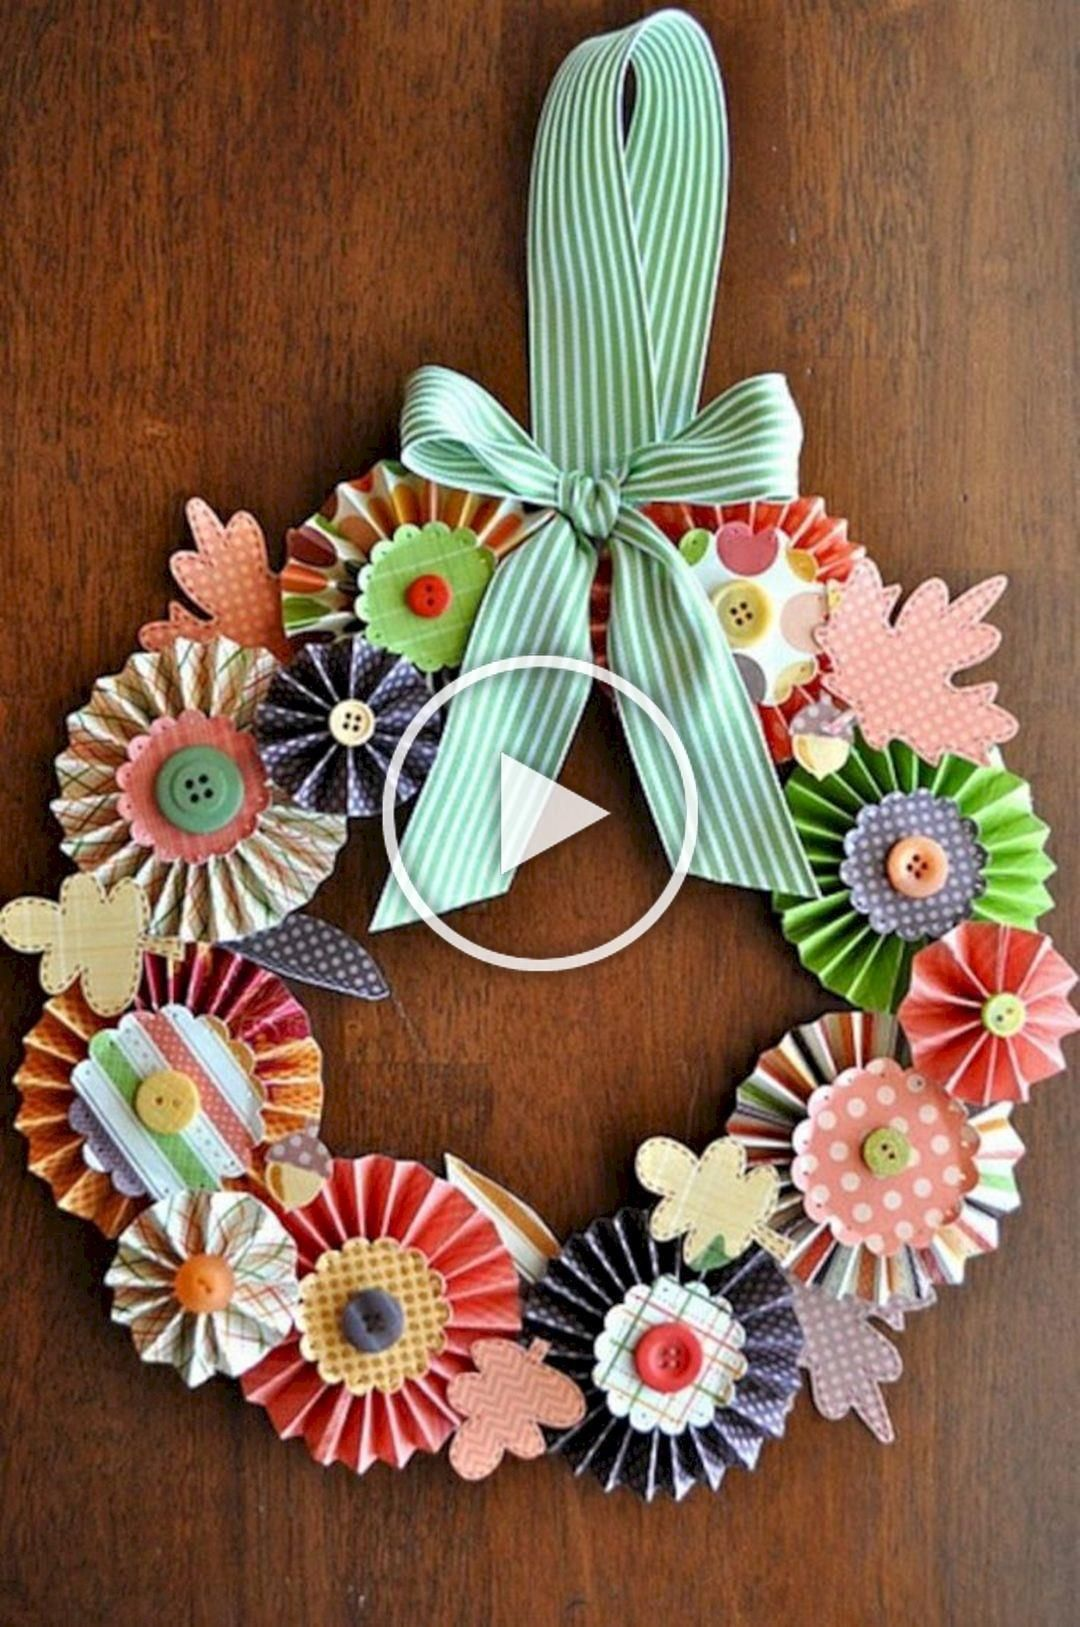 Pin by Tenna Tatum on Wreaths in 2020 Paper wreath